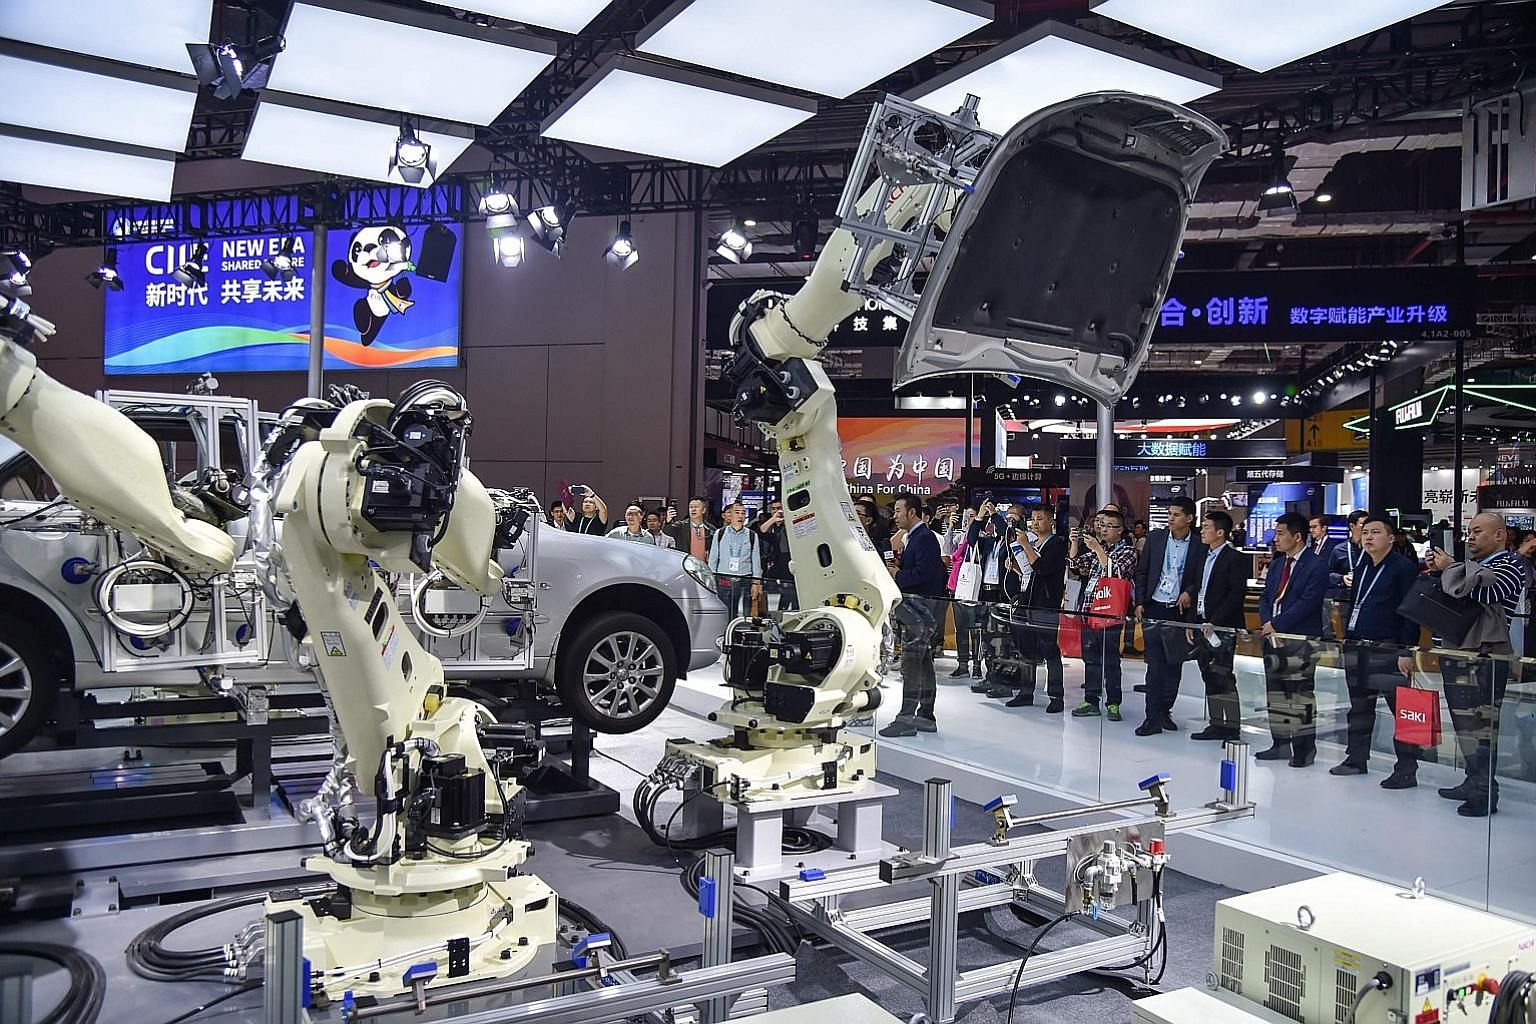 Robots assembling parts of a car at the China International Import Expo in Shanghai last November. With more research and development spending and an accelerated shift to automation, long-term investment themes like automation and robotics will stand